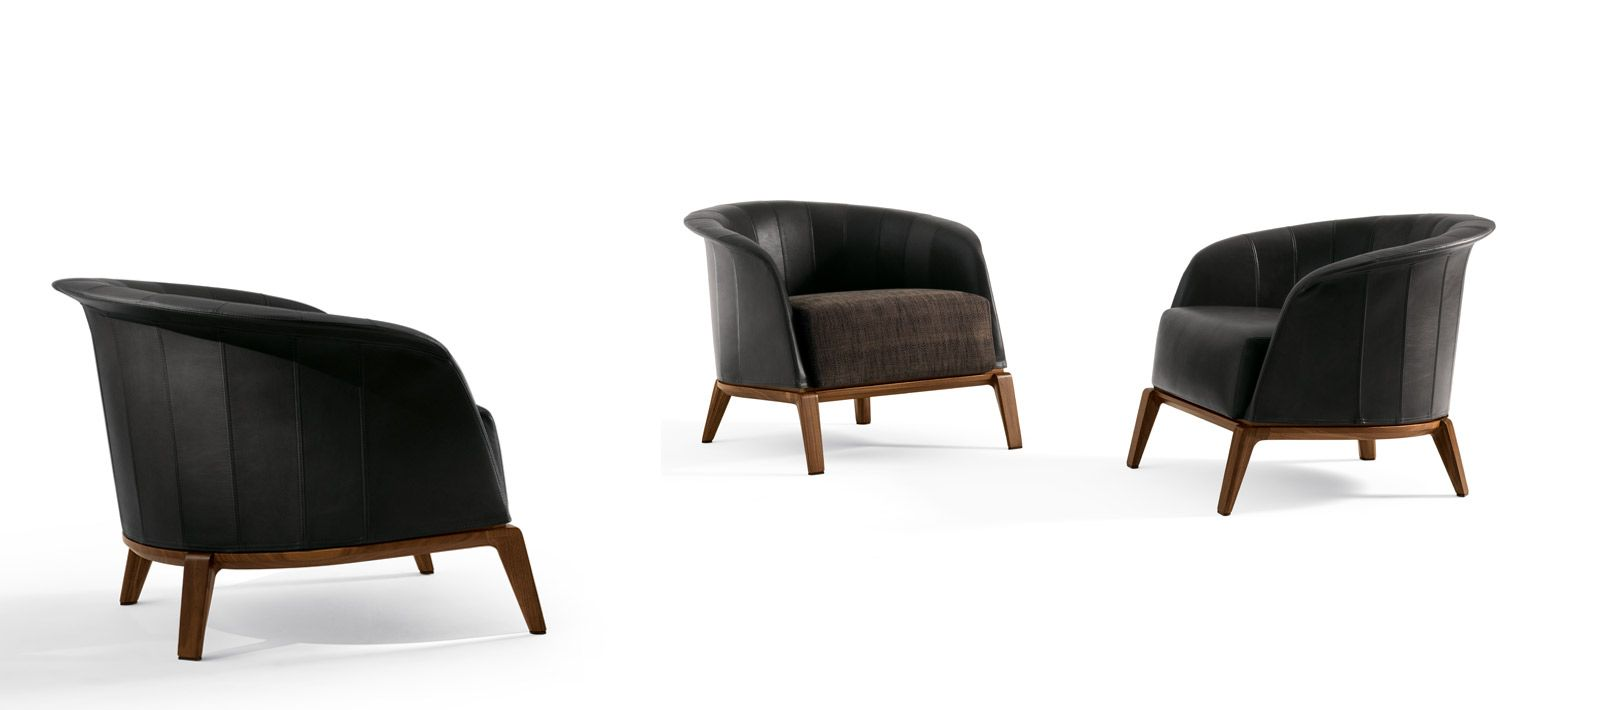 24 Best Giorgetti Furniture Images On Pinterest Armchairs  # Muebles Giorgetti